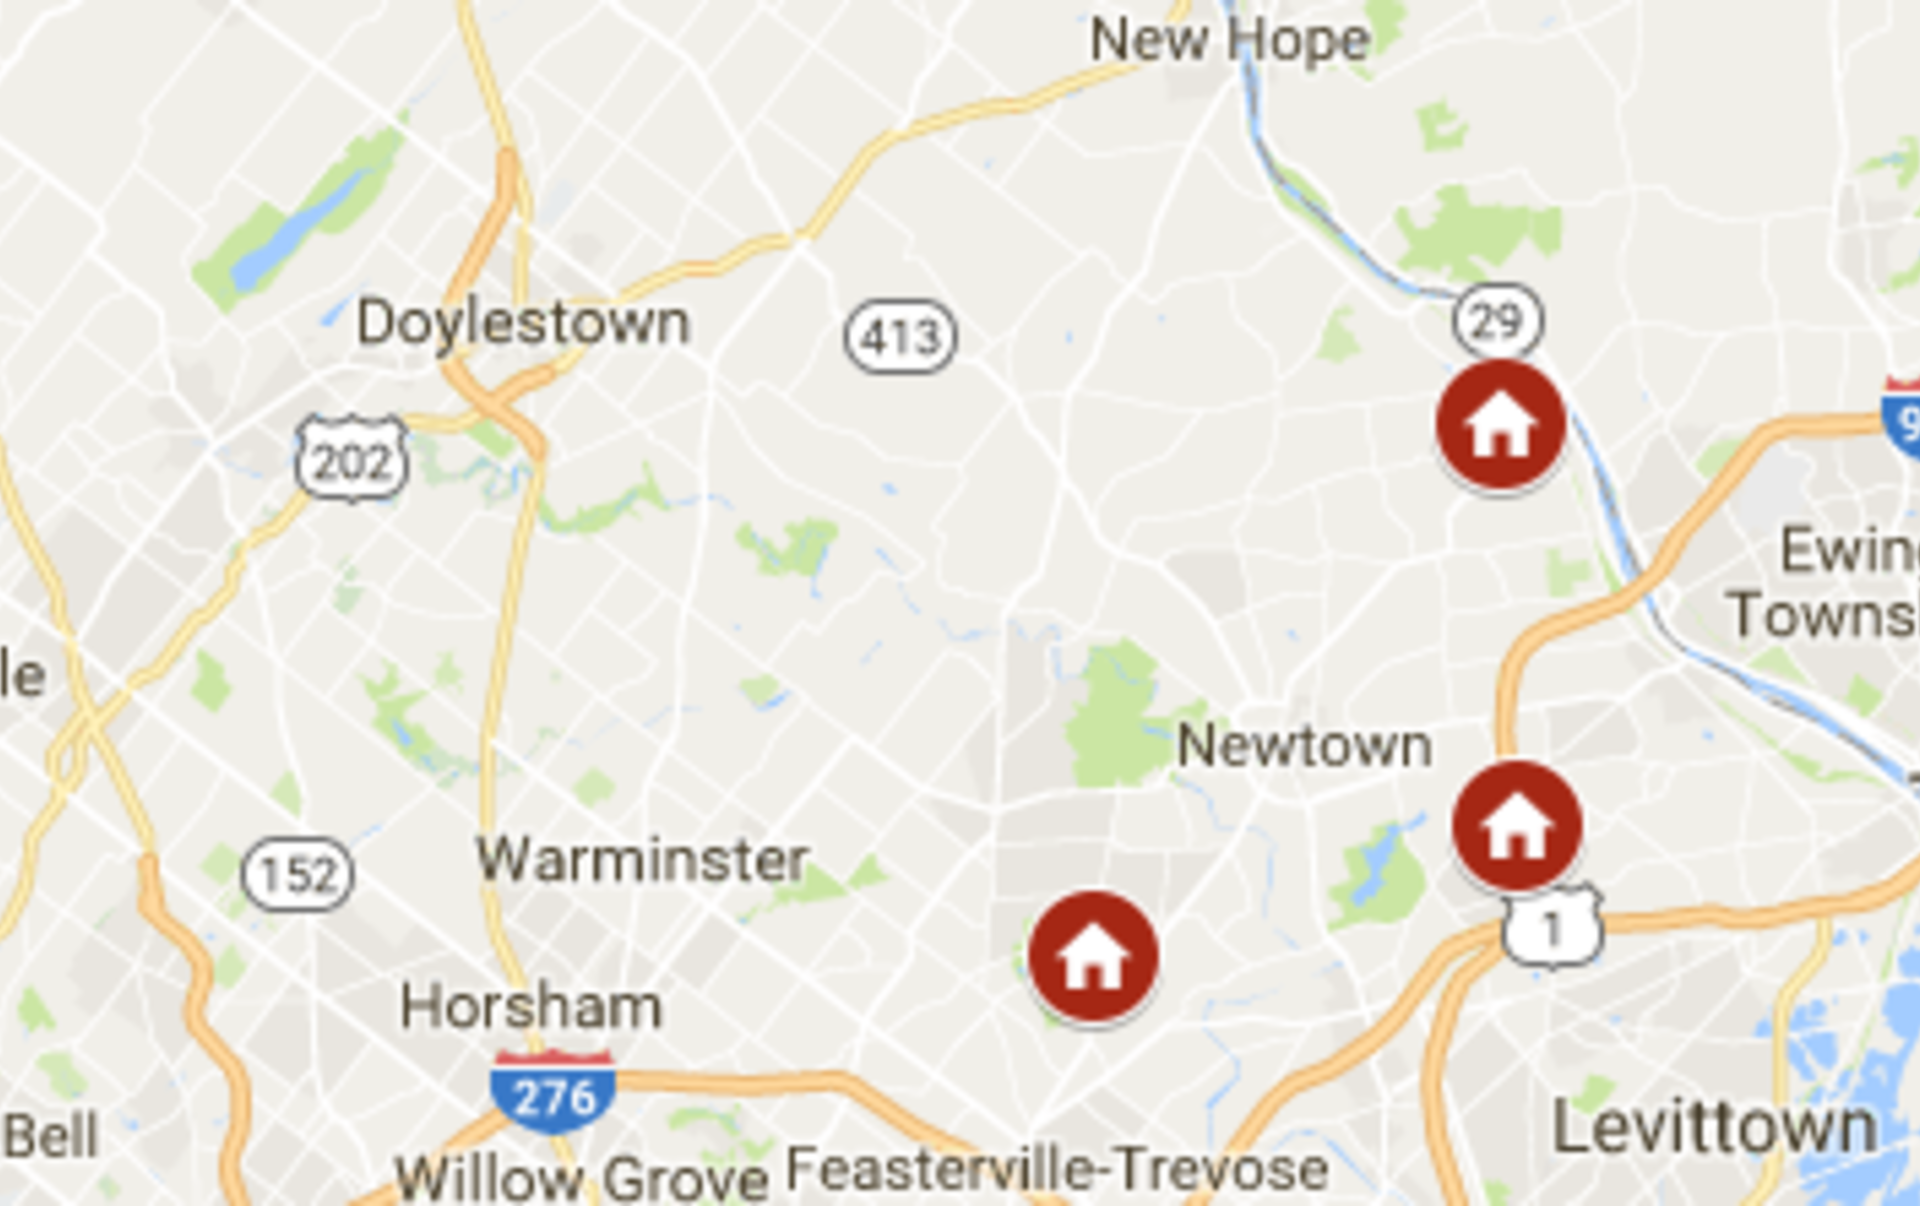 Keller Williams Newtown's open houses January 13th – January 14th